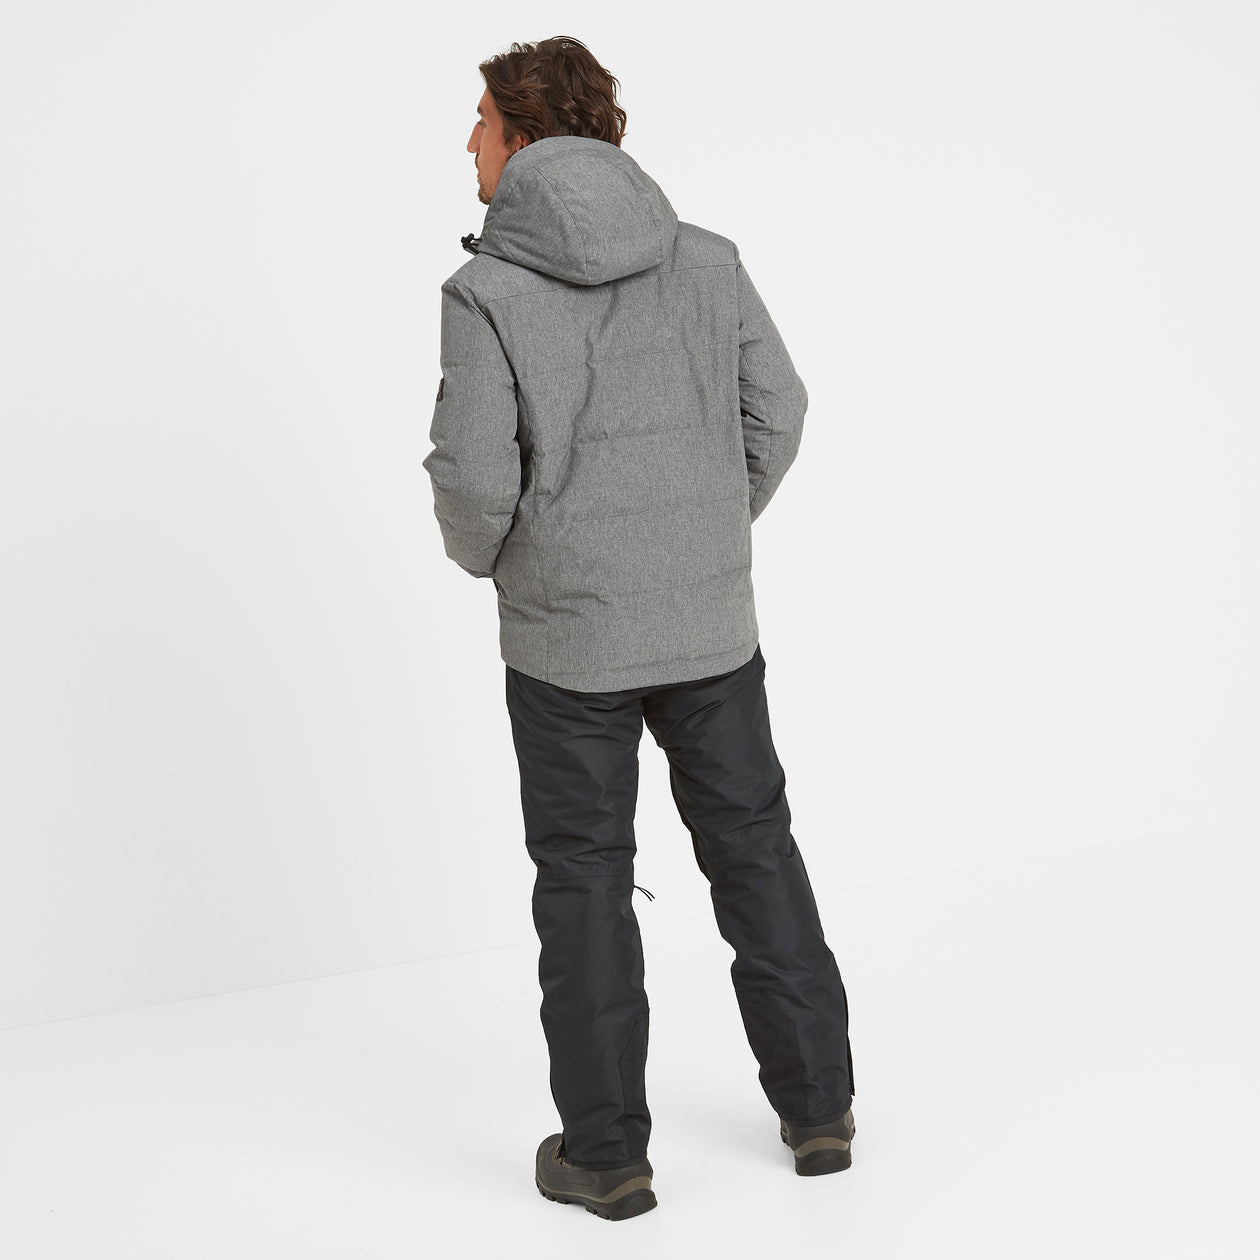 Allerton Mens Down Quilted Ski Jacket - Grey Marl image 4